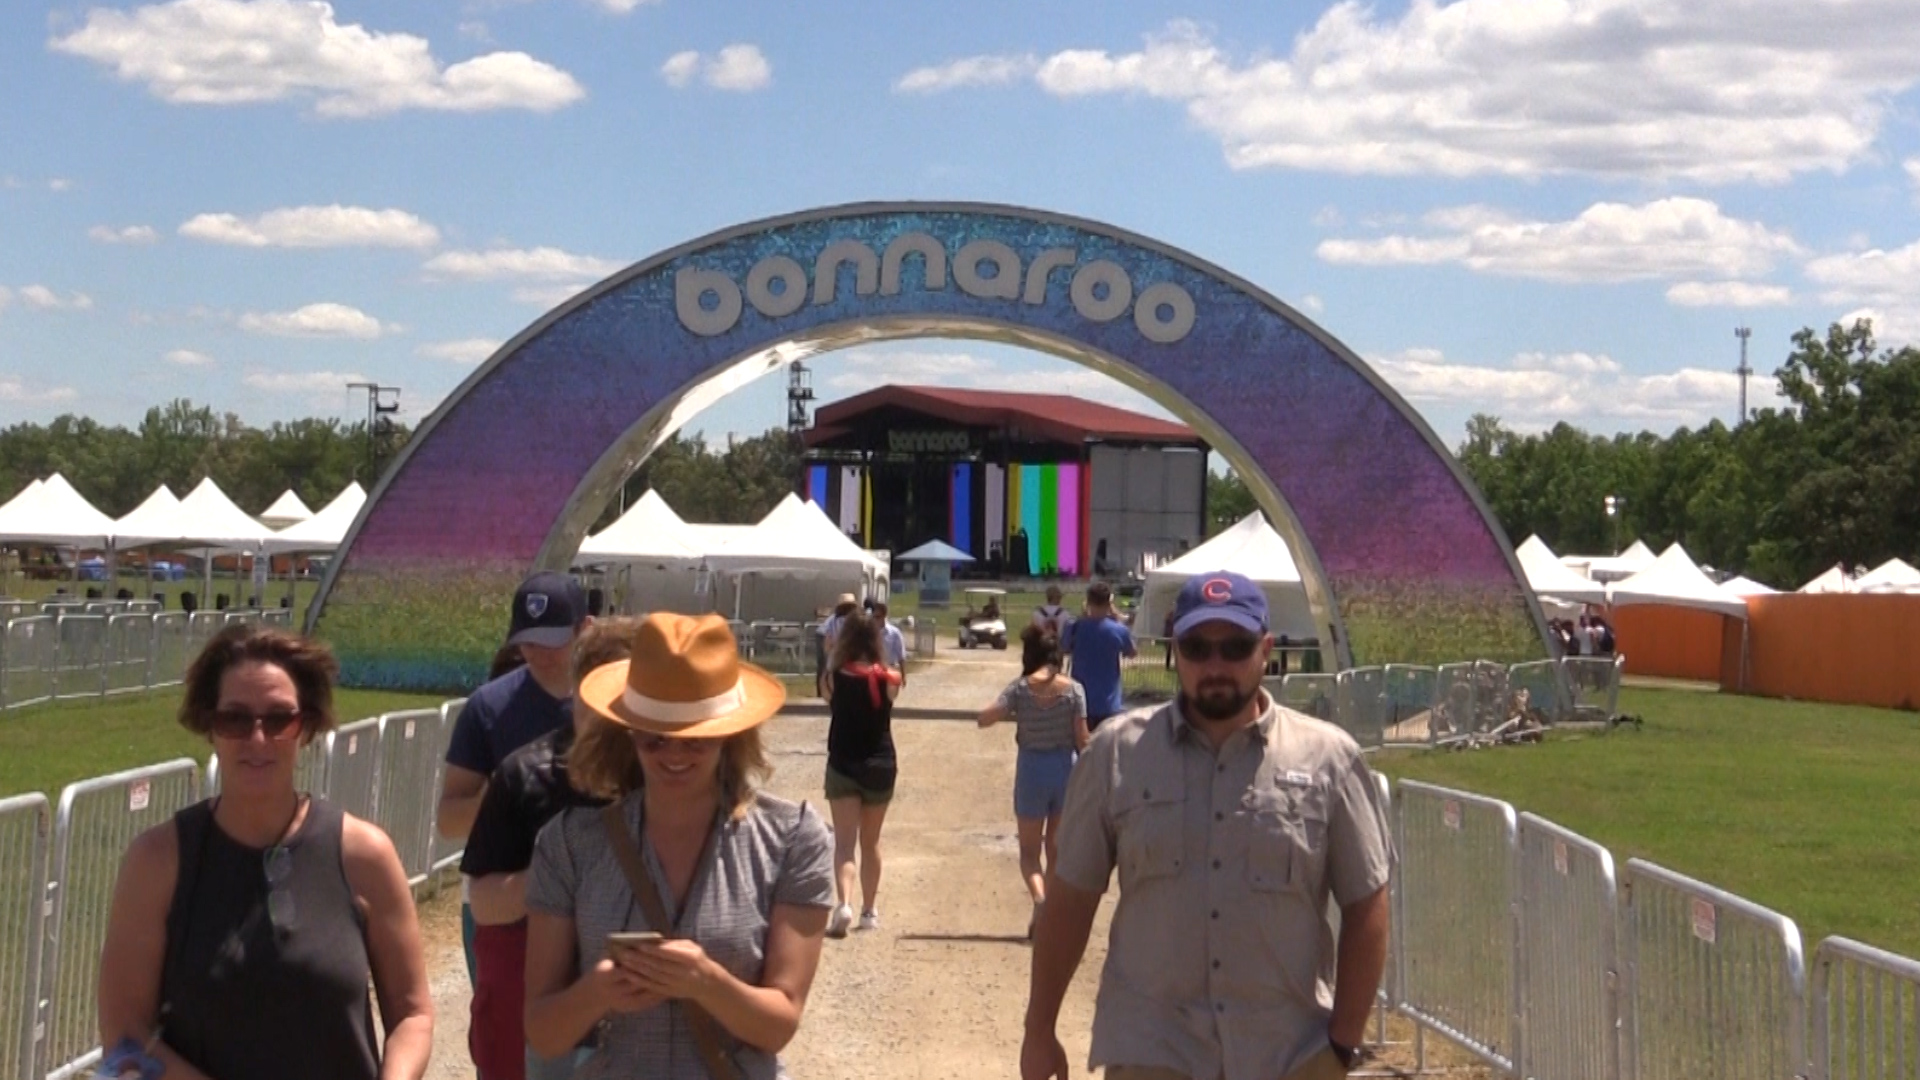 VIDEO - Behind the scenes at Bonnaroo